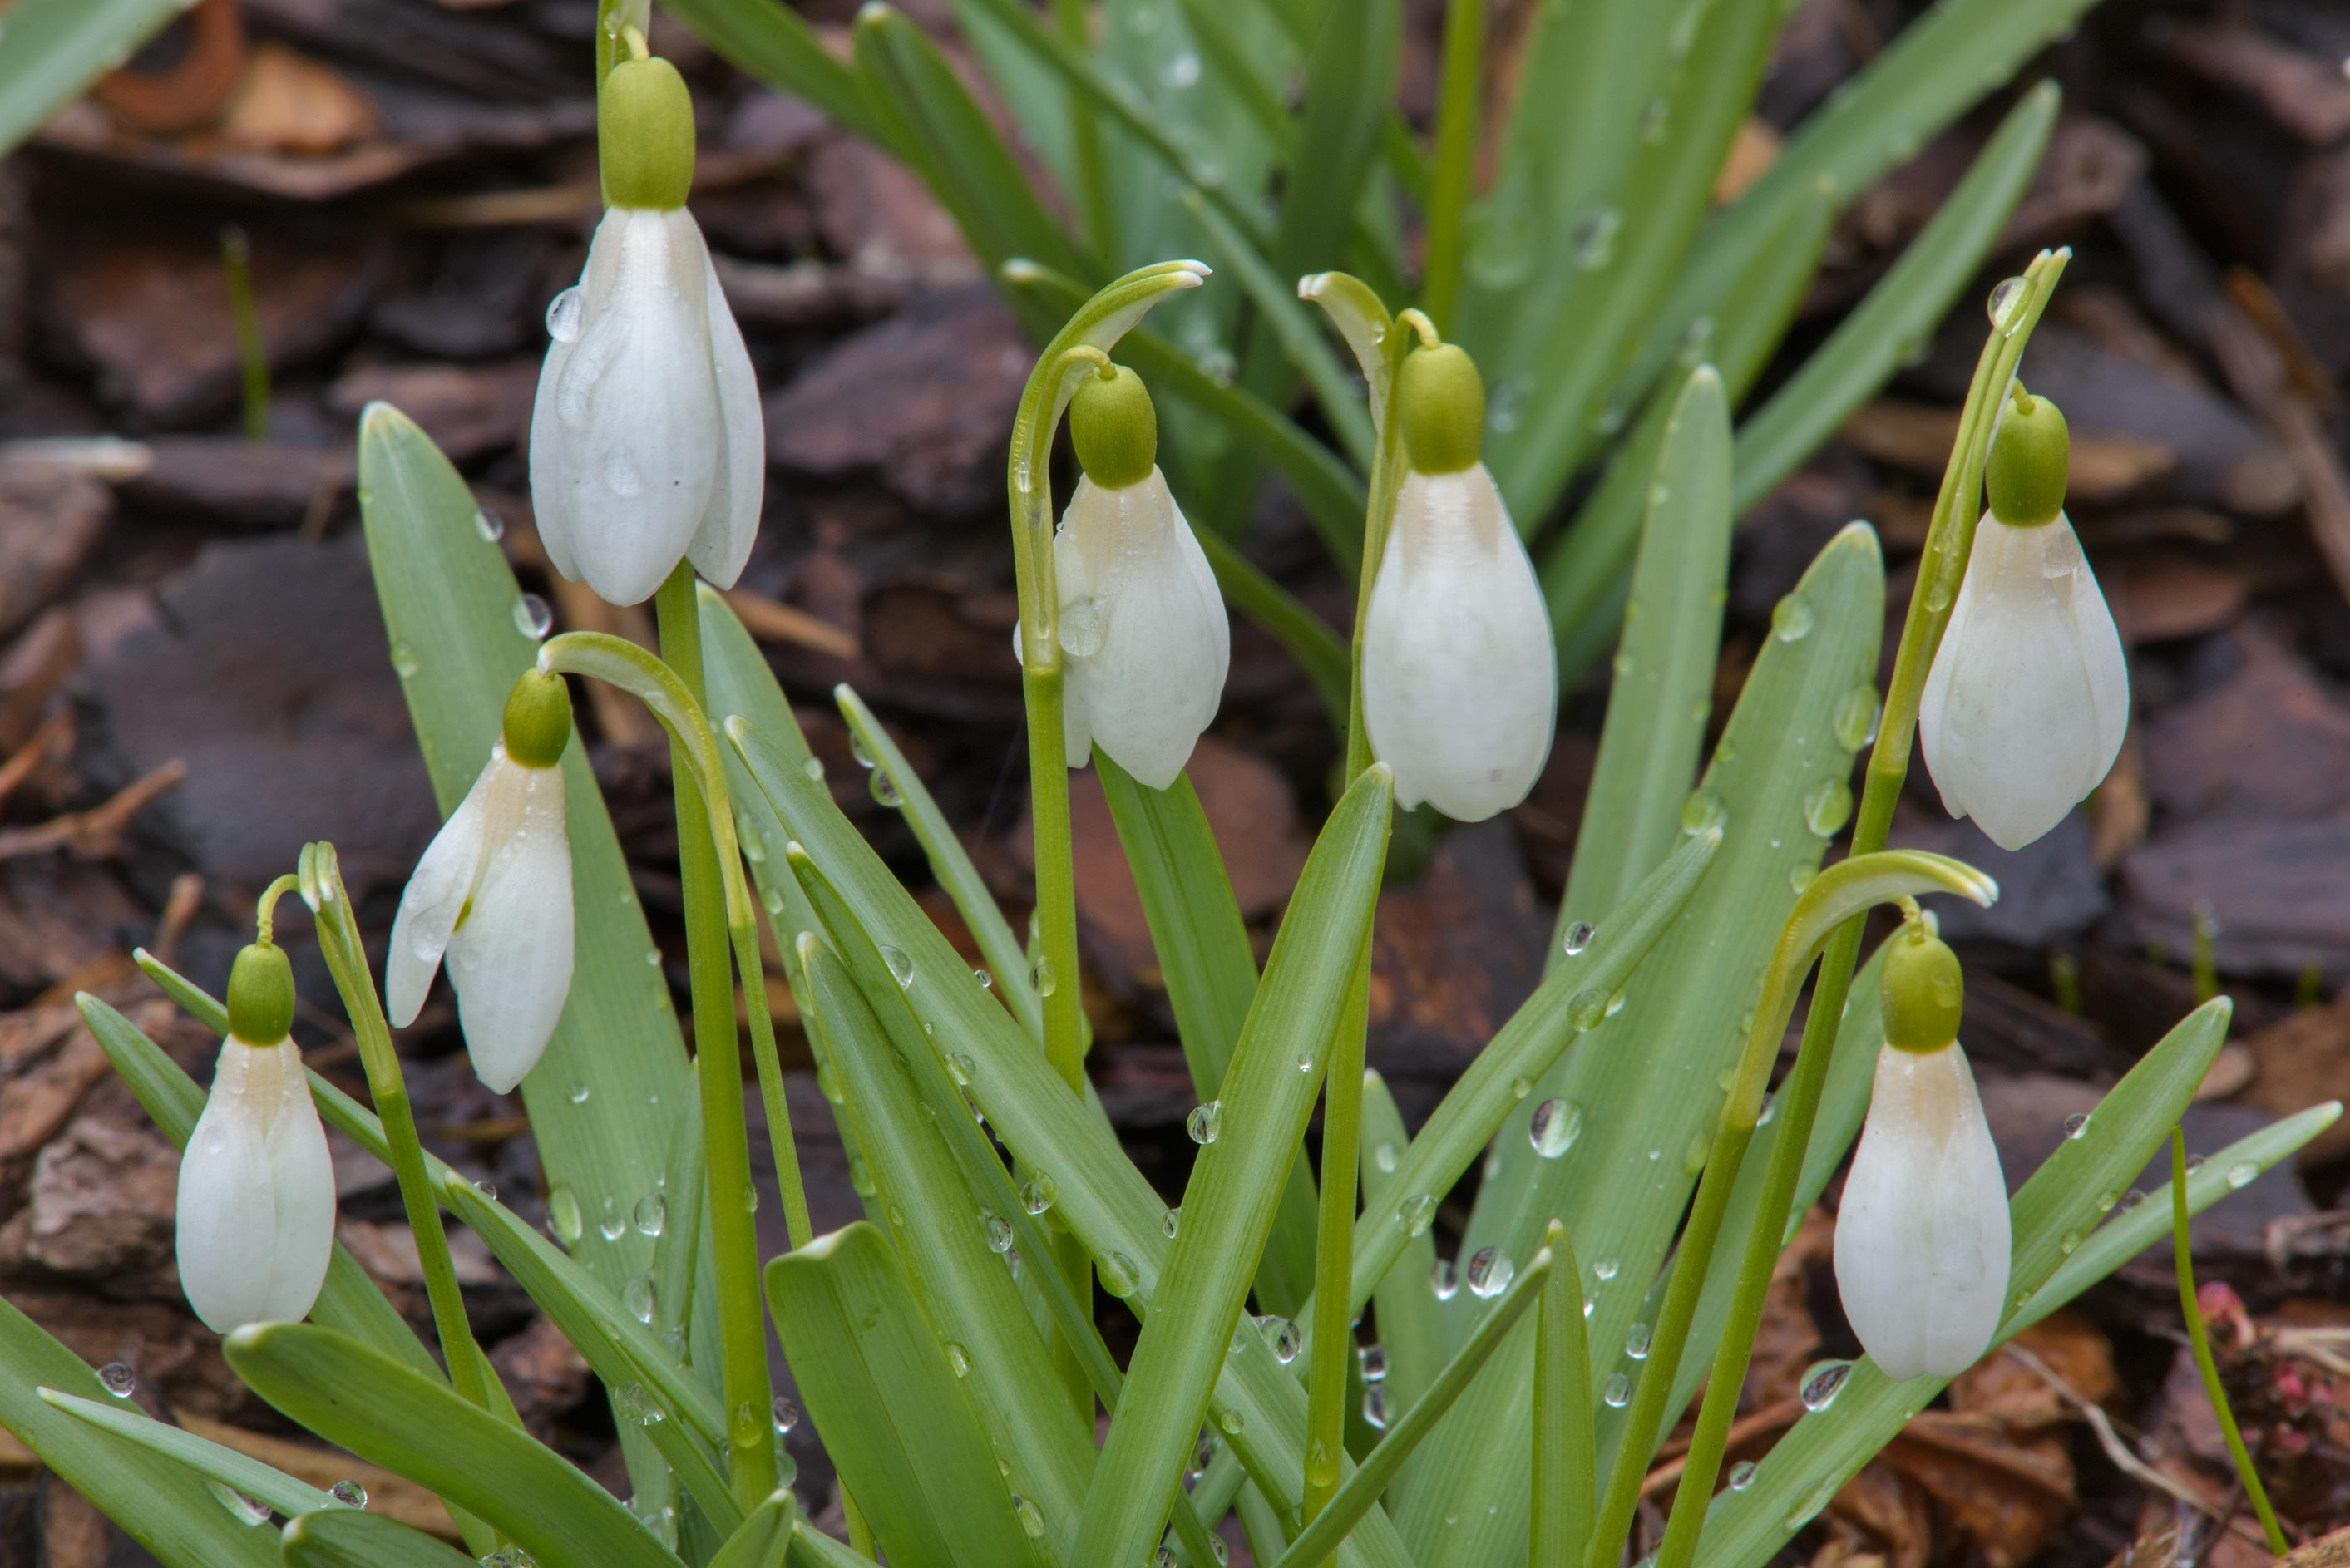 White flowers of snowdrops (Galanthus) in Botanic...Institute. St.Petersburg, Russia